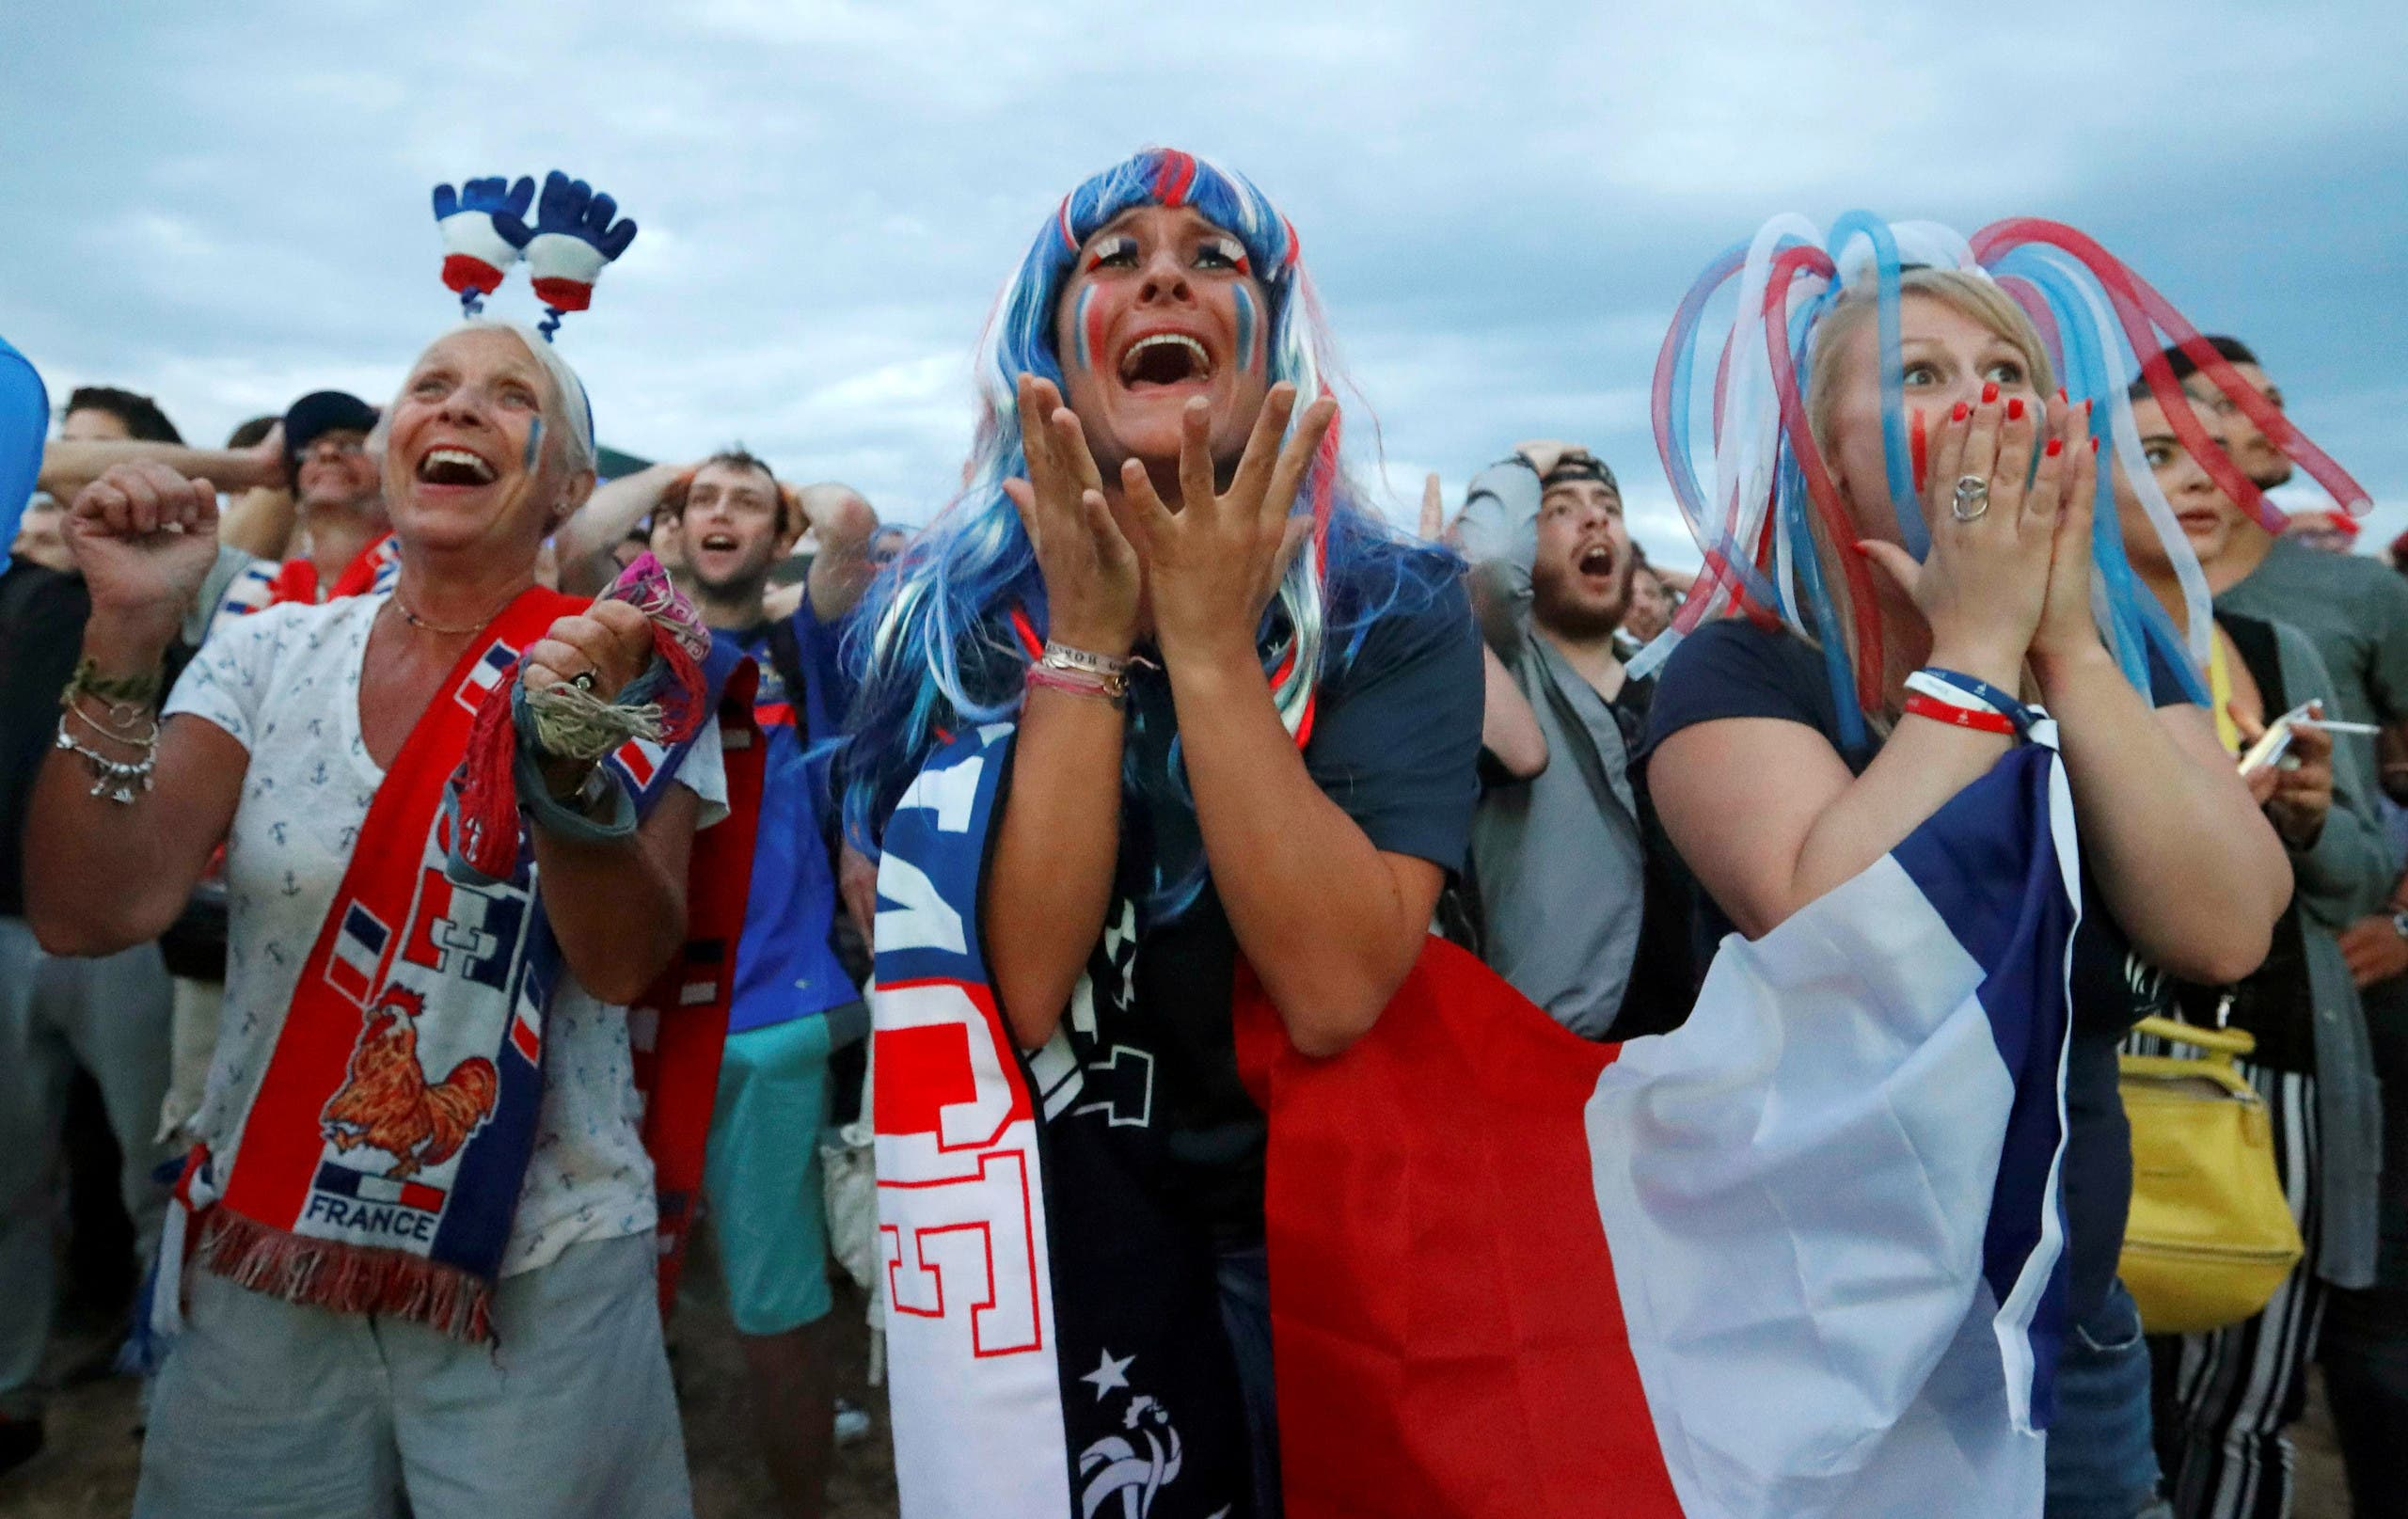 Euro 2016 marred by violence